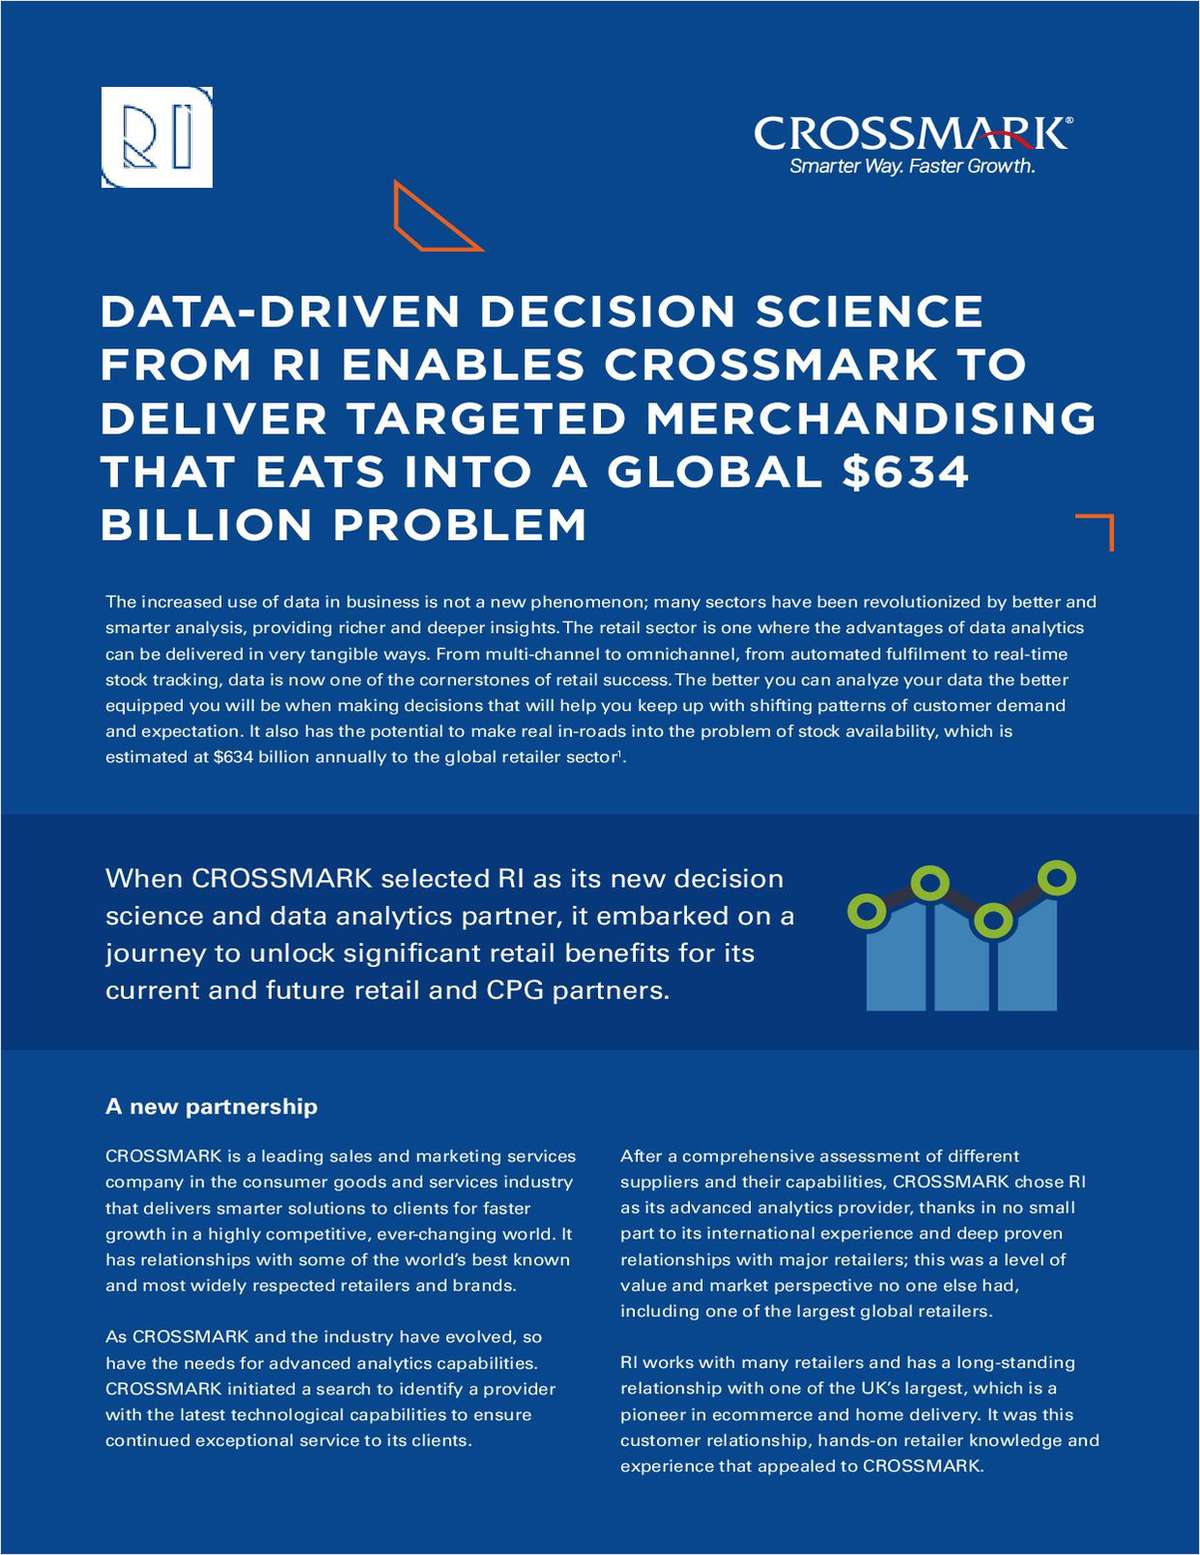 Data-Driven Decision Science From RI Enables Crossmark to Deliver Targeted Merchandising